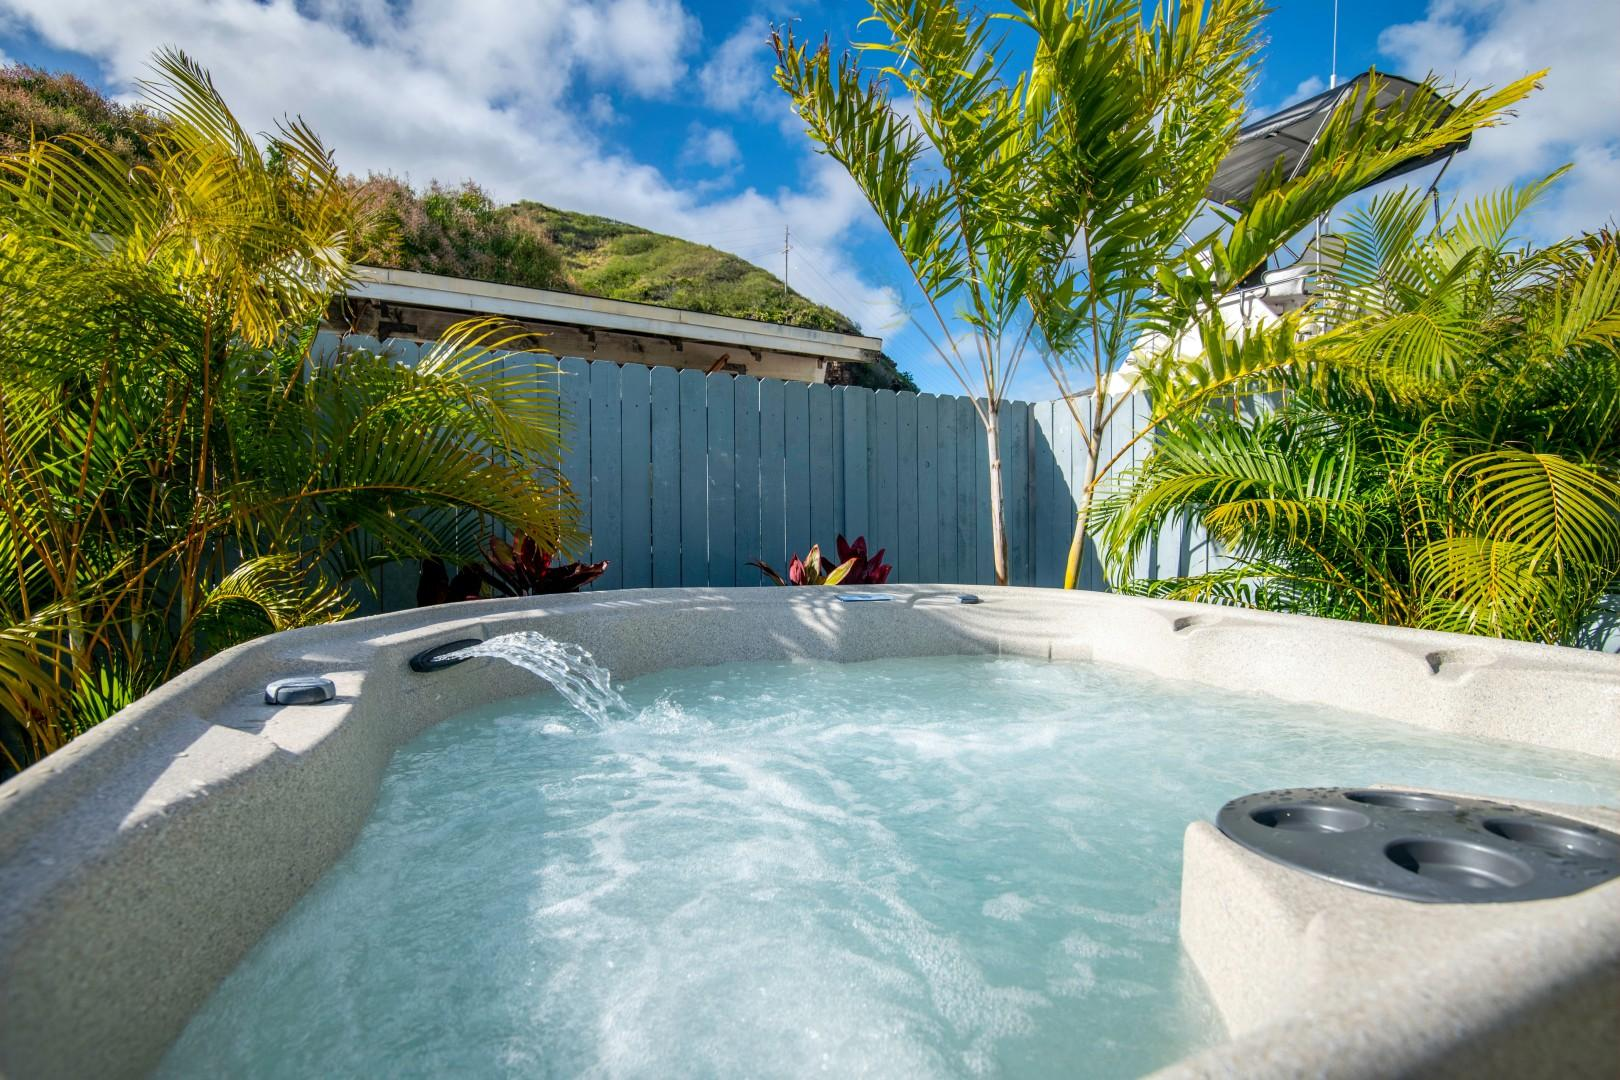 Rest and relax in the private hot tub in the back yard, brand new to the home!